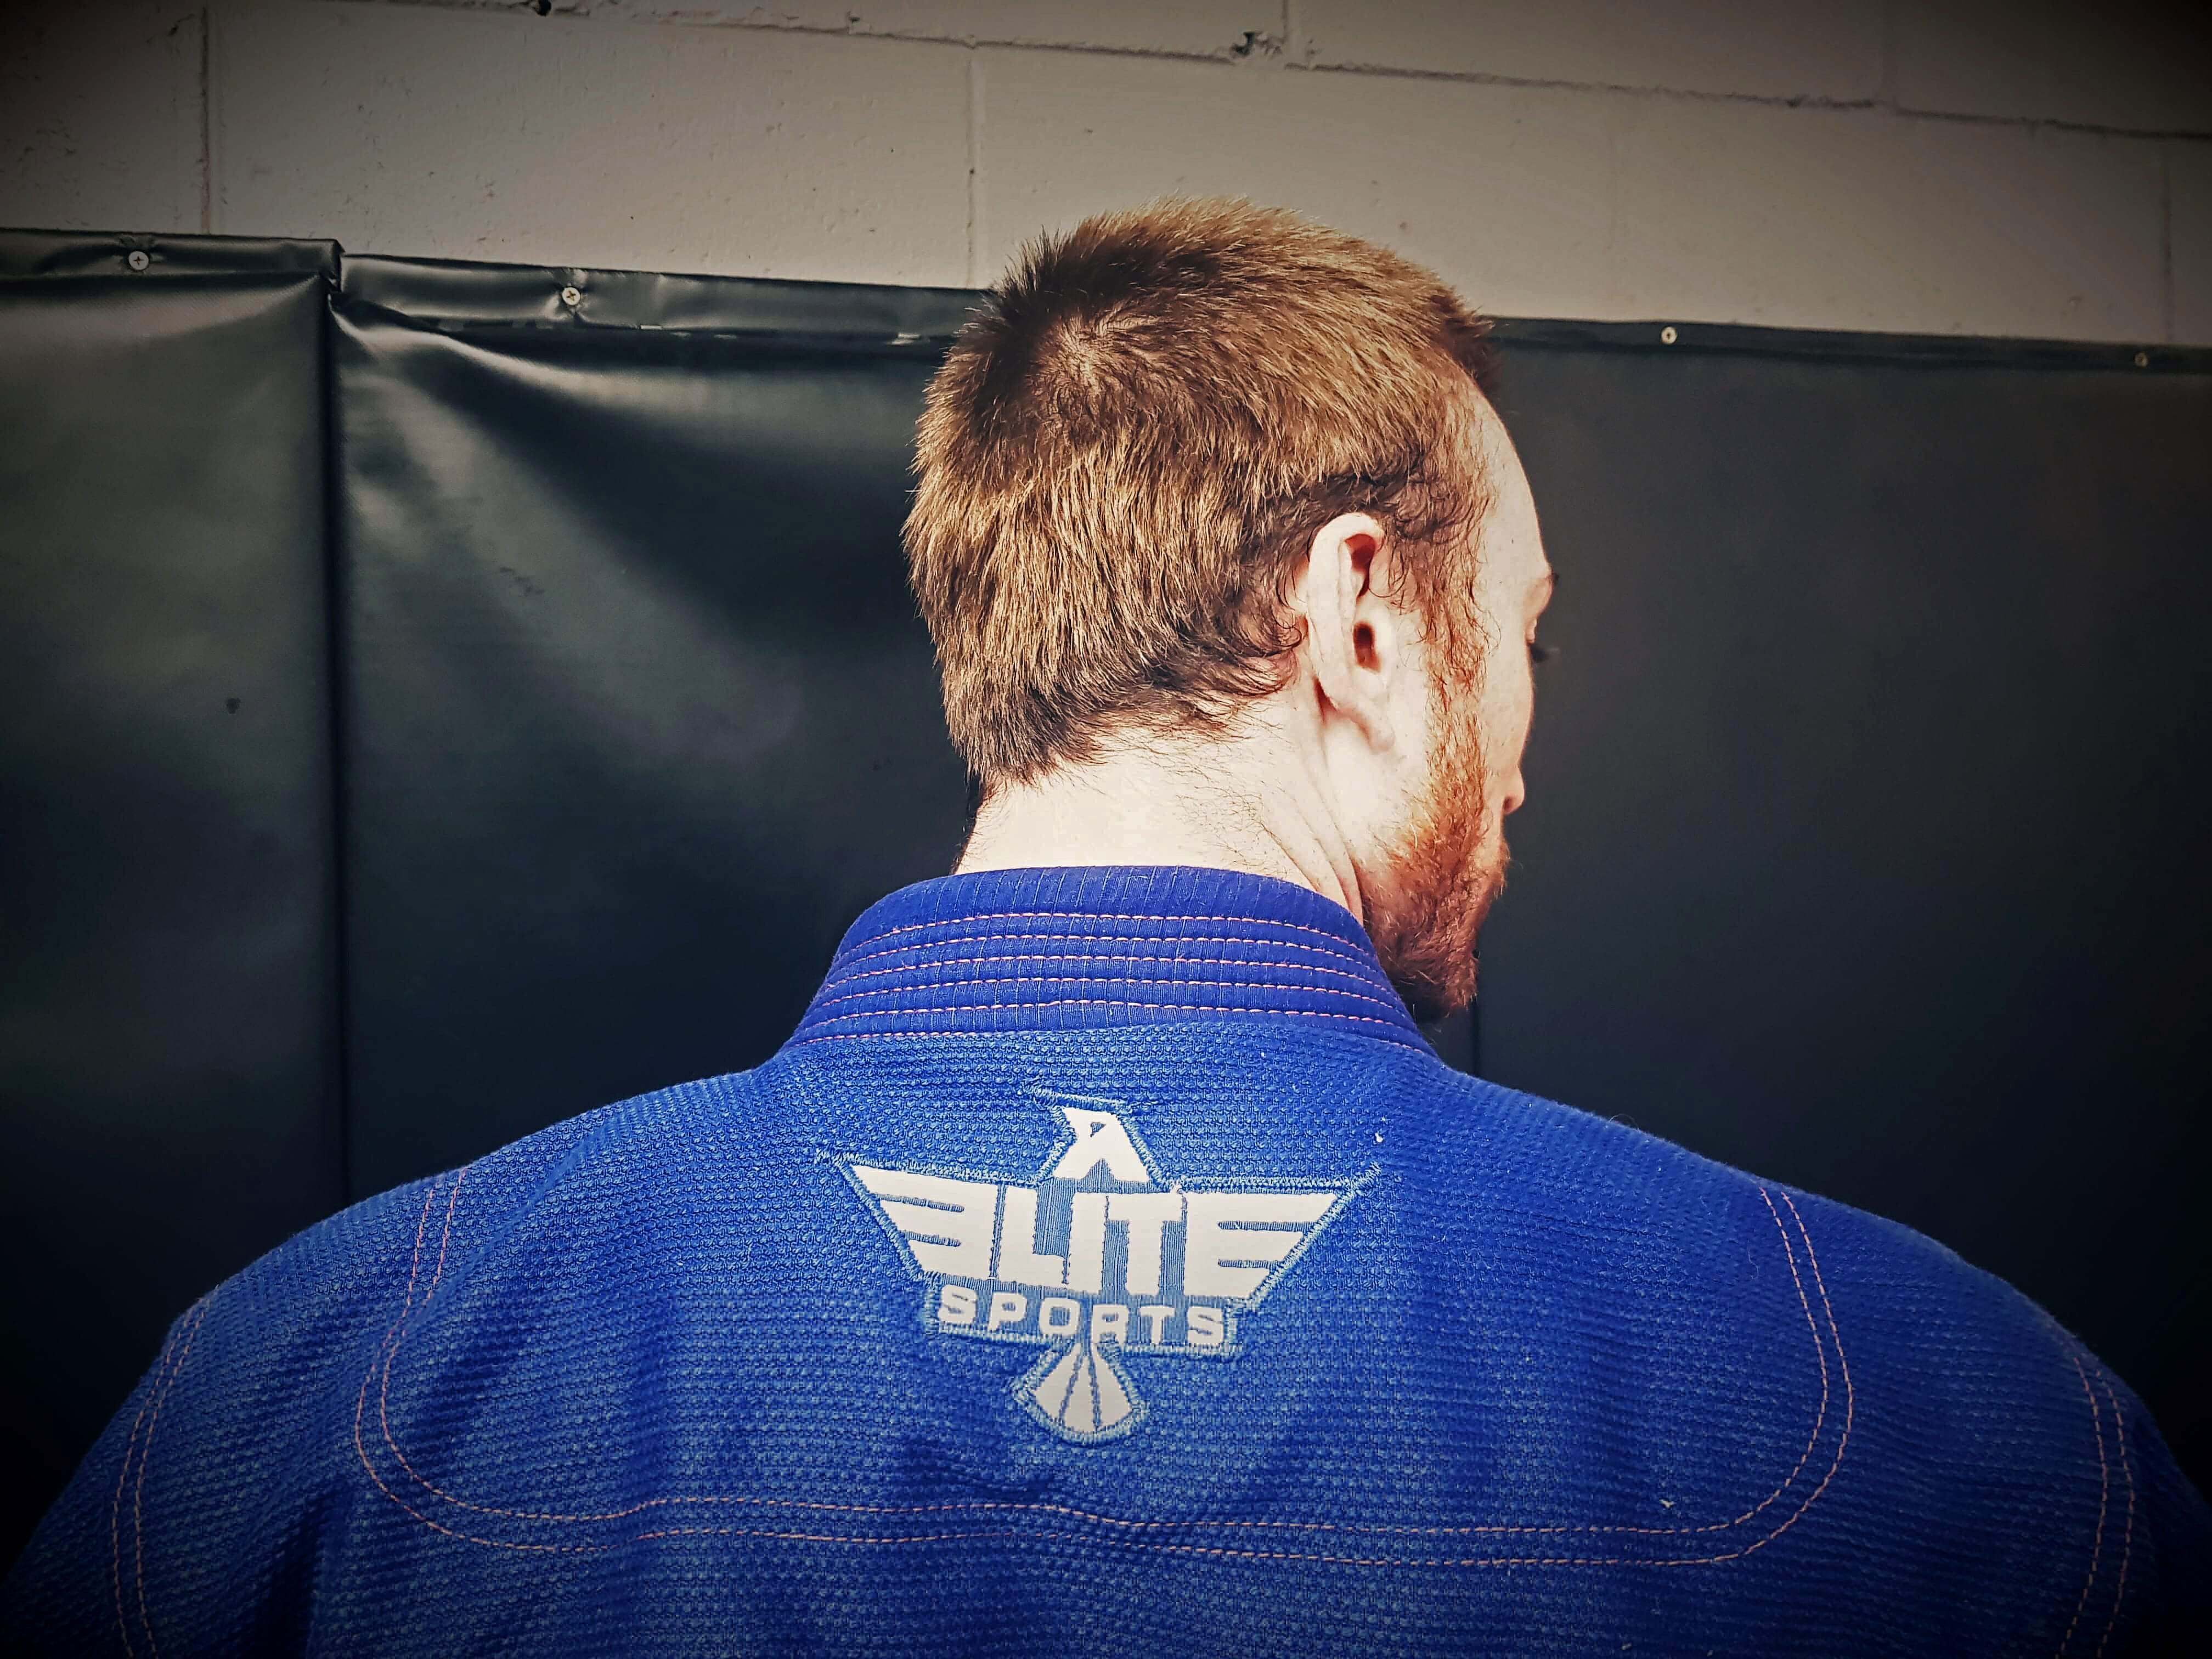 Elite Sports Team Elite Bjj Fighter Ashton Riddle-Johnston  Image5